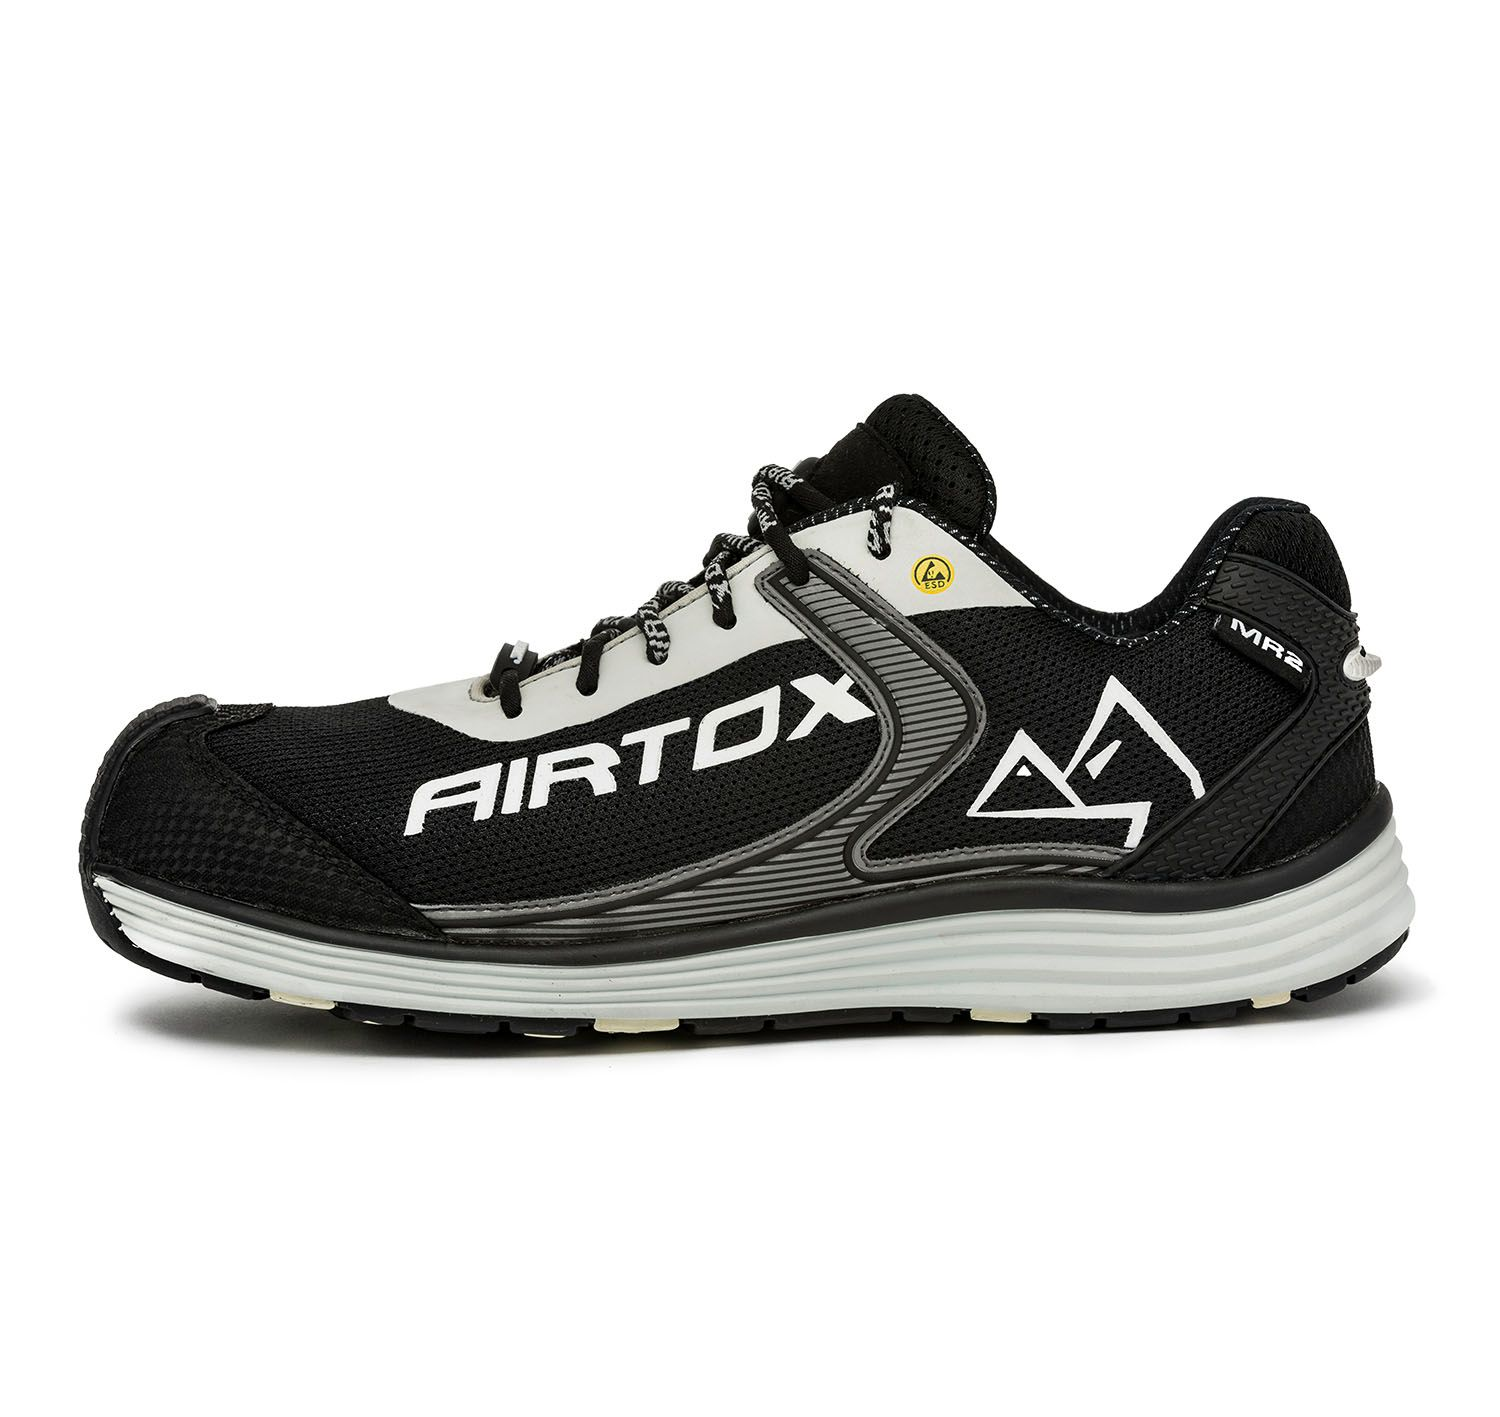 MR2 safety shoes MR2 airtox airtoxsafetyshoes